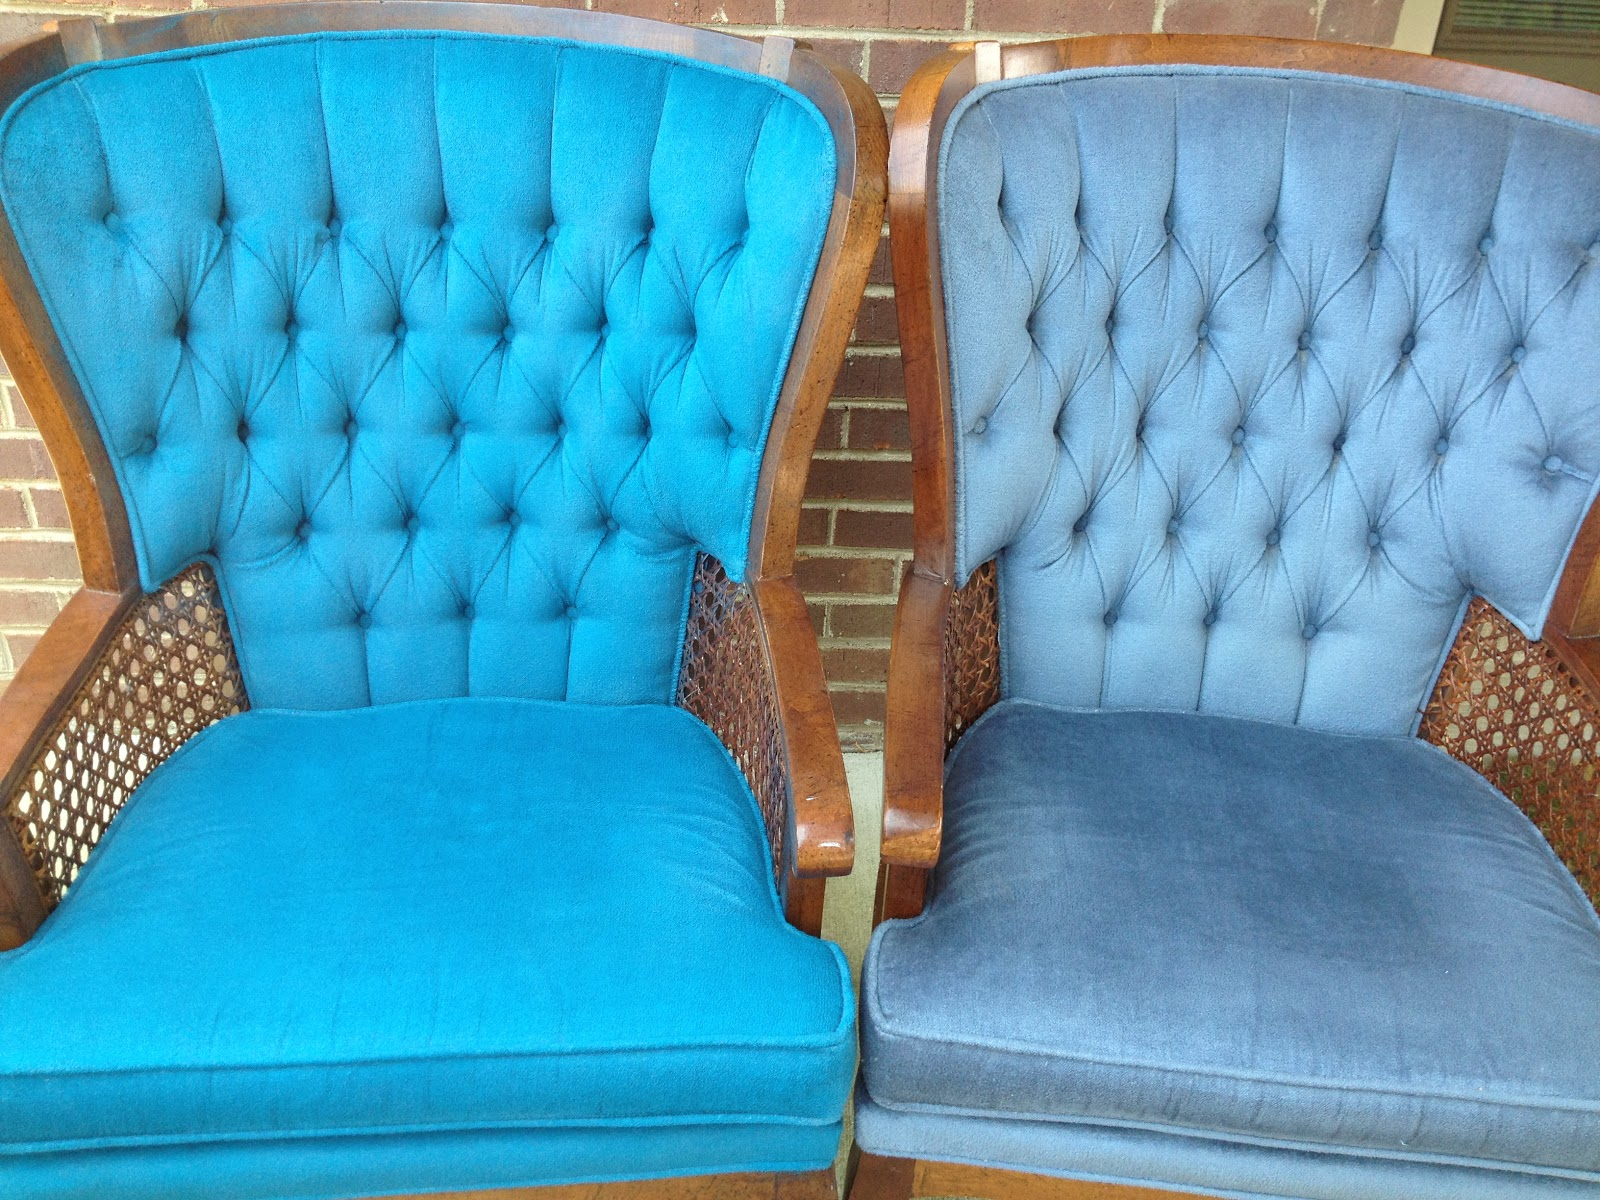 Bella's Crafty Mom: From Dull to Dazzling-Painting Upholstery